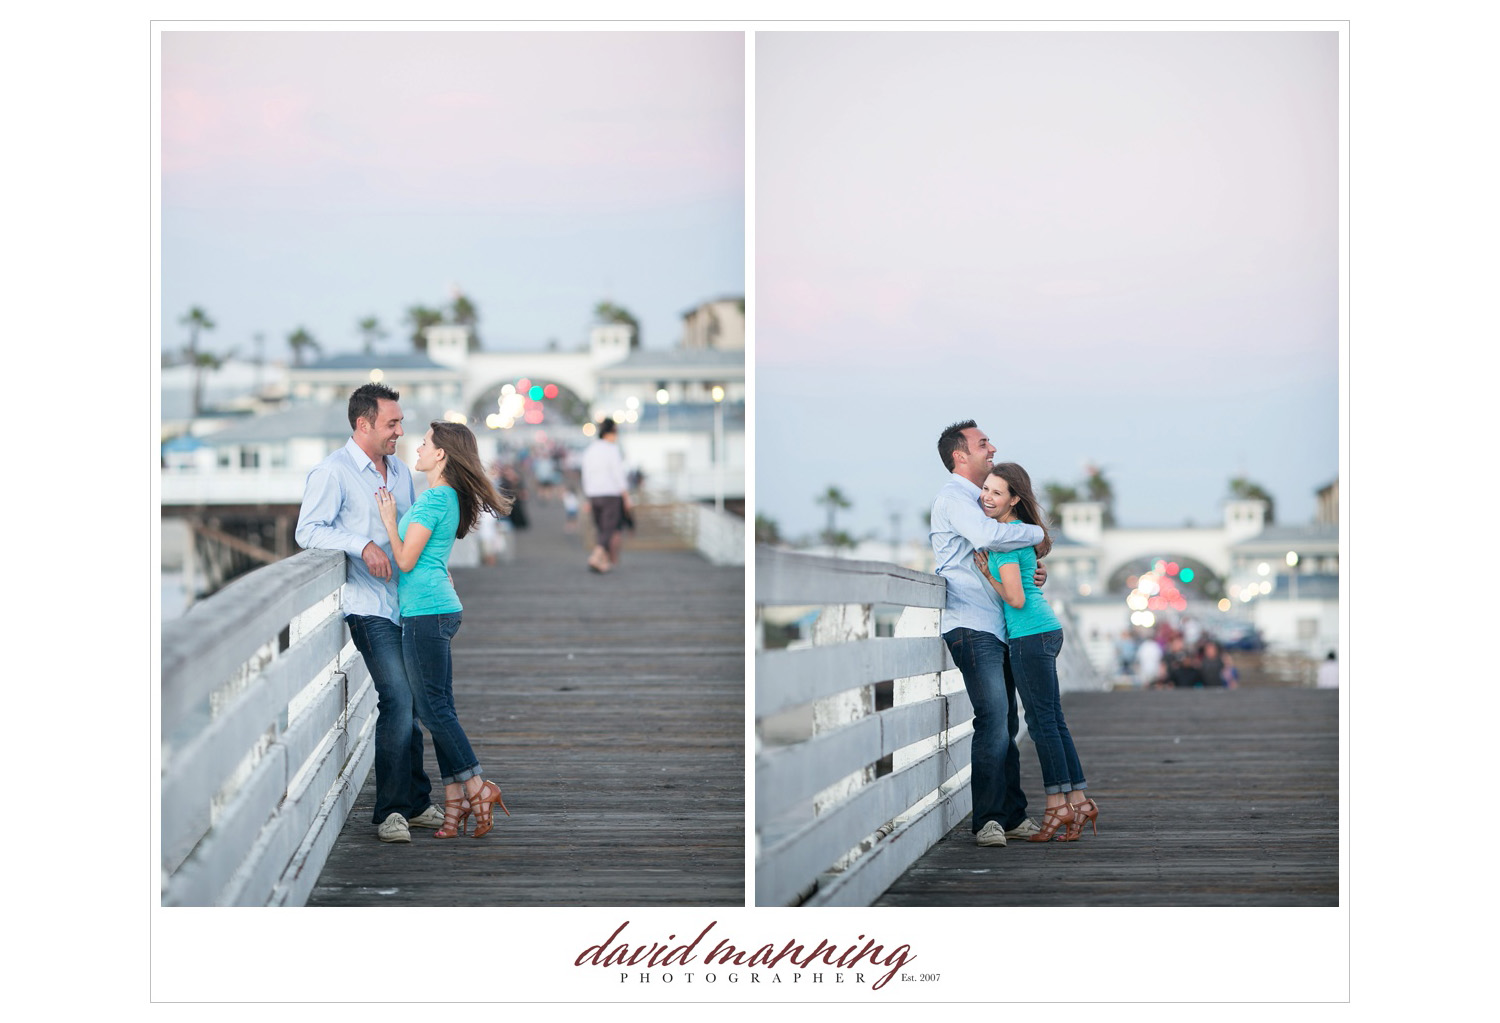 Pacific-Beach-Engagement-Photos-David-Manning-130903-0028.jpg